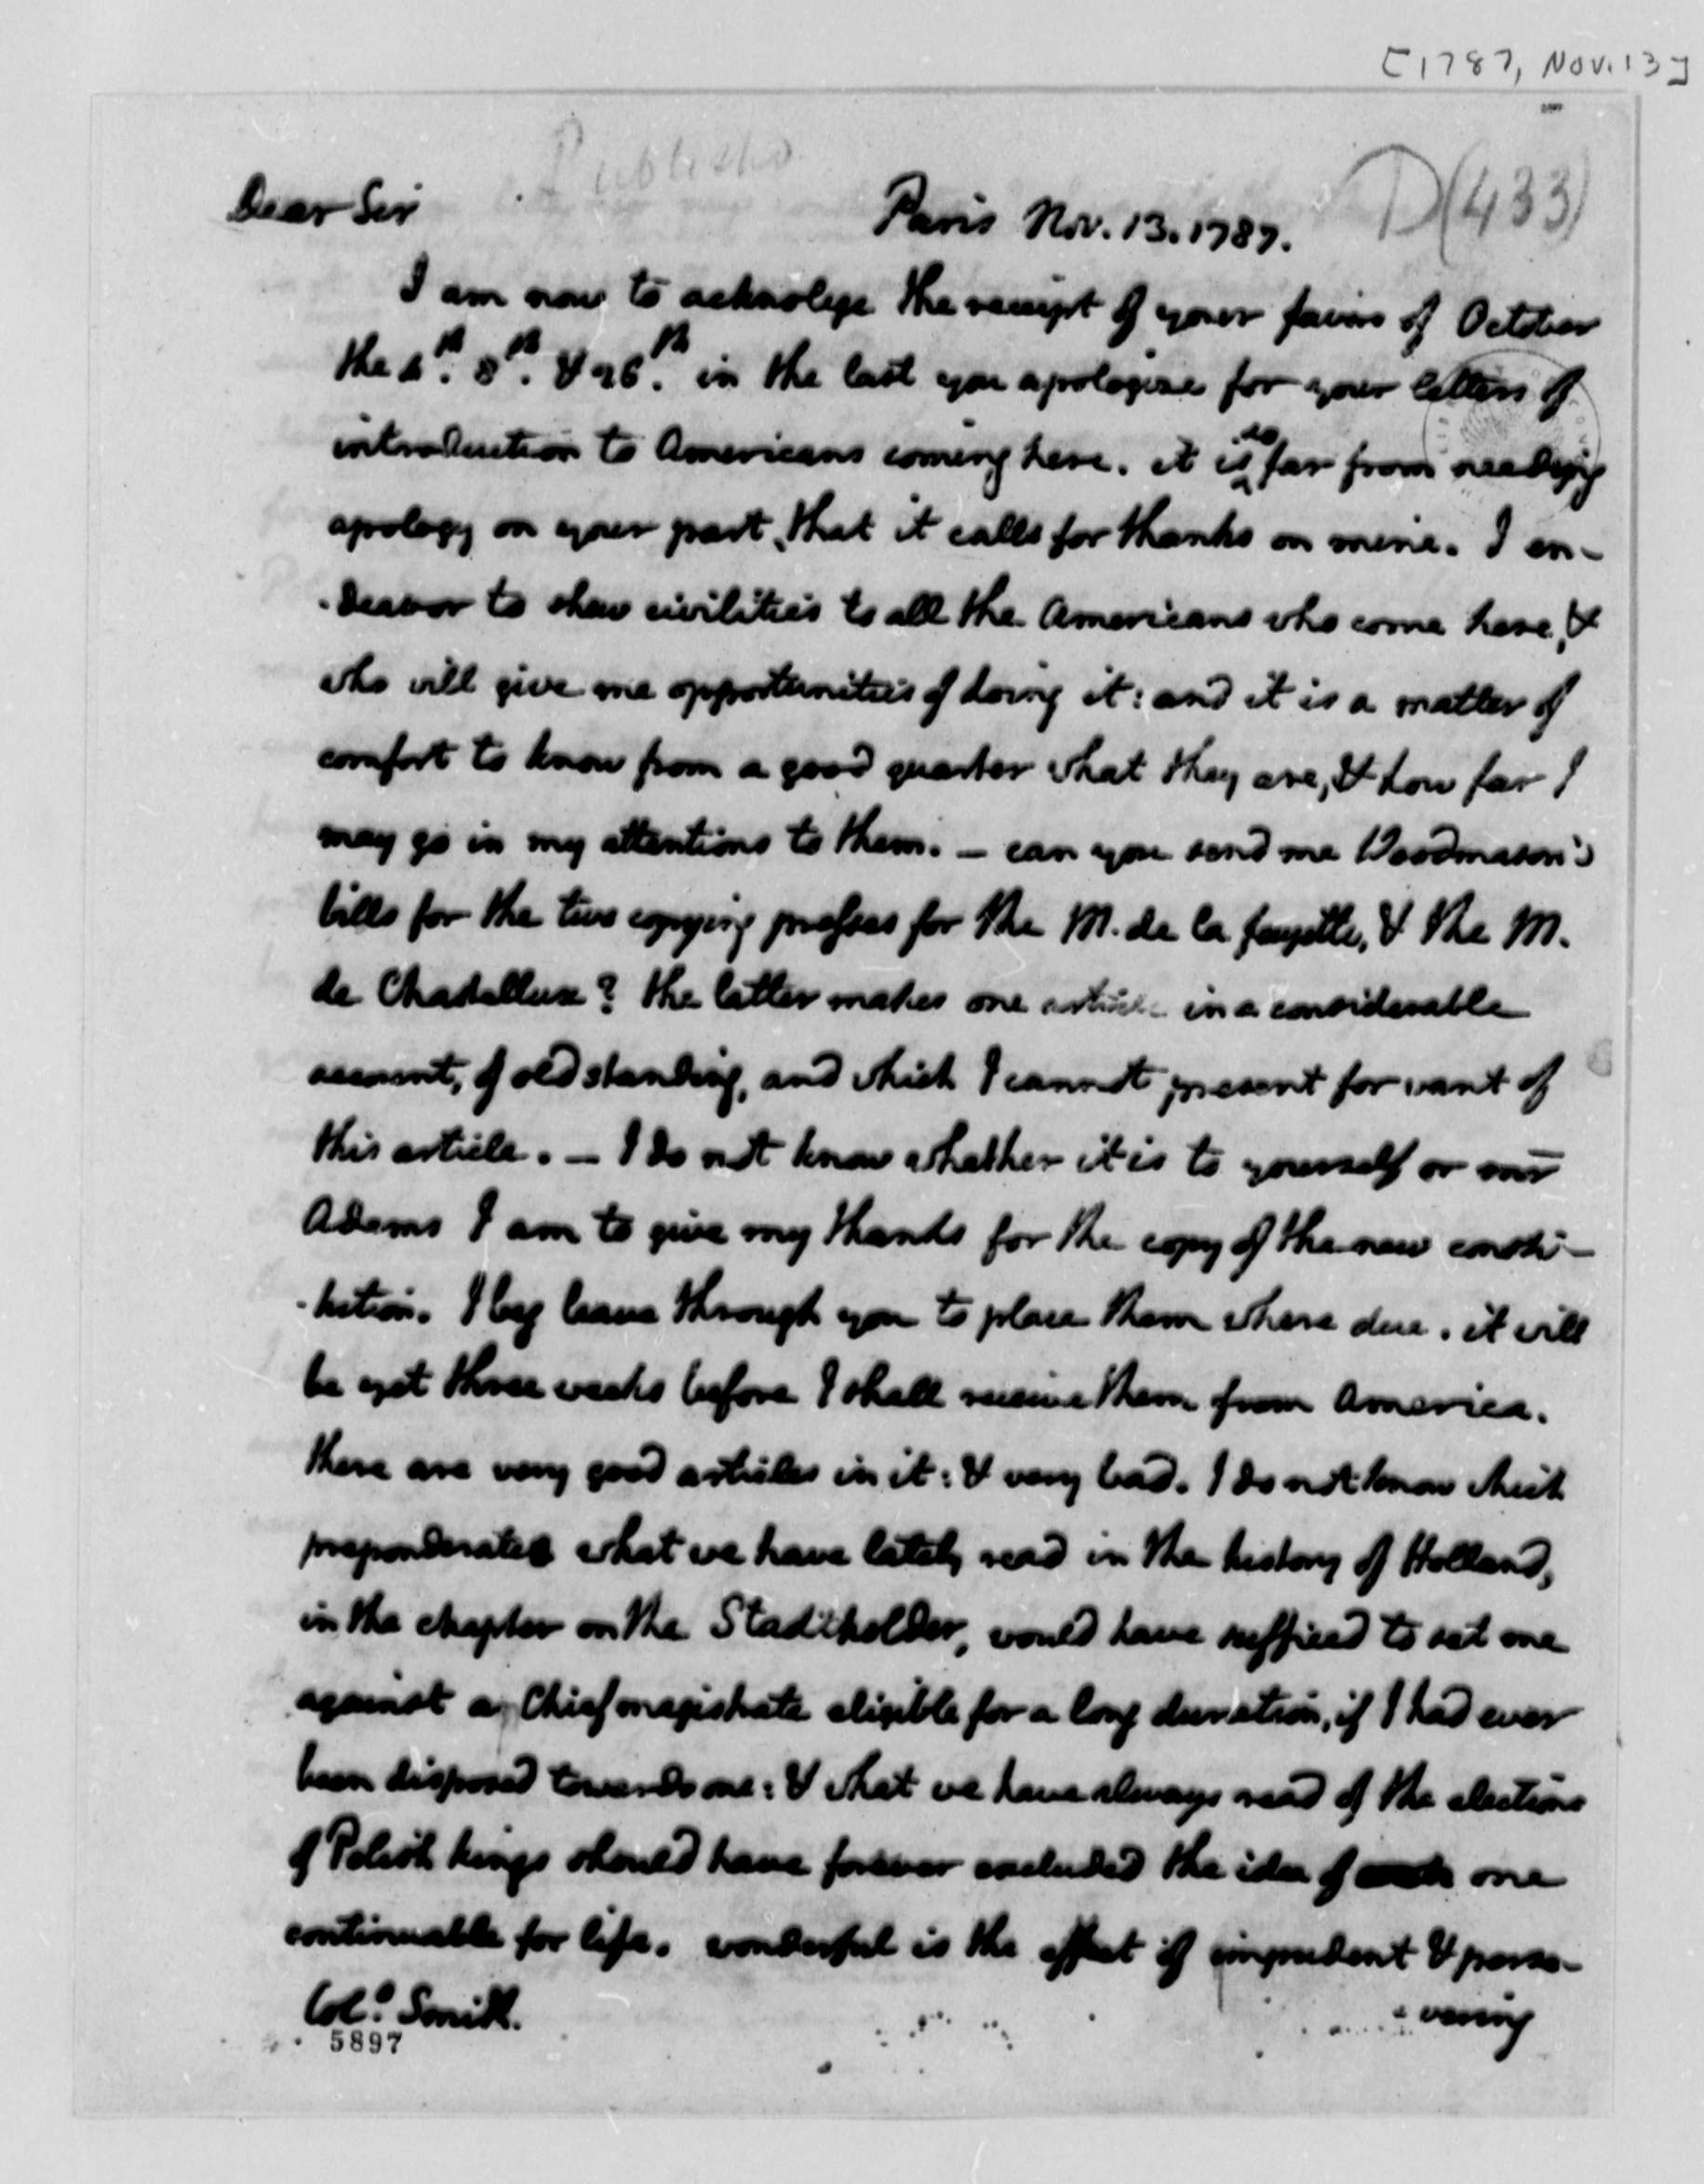 Thomas Jefferson to William S. Smith, November 13, 1787